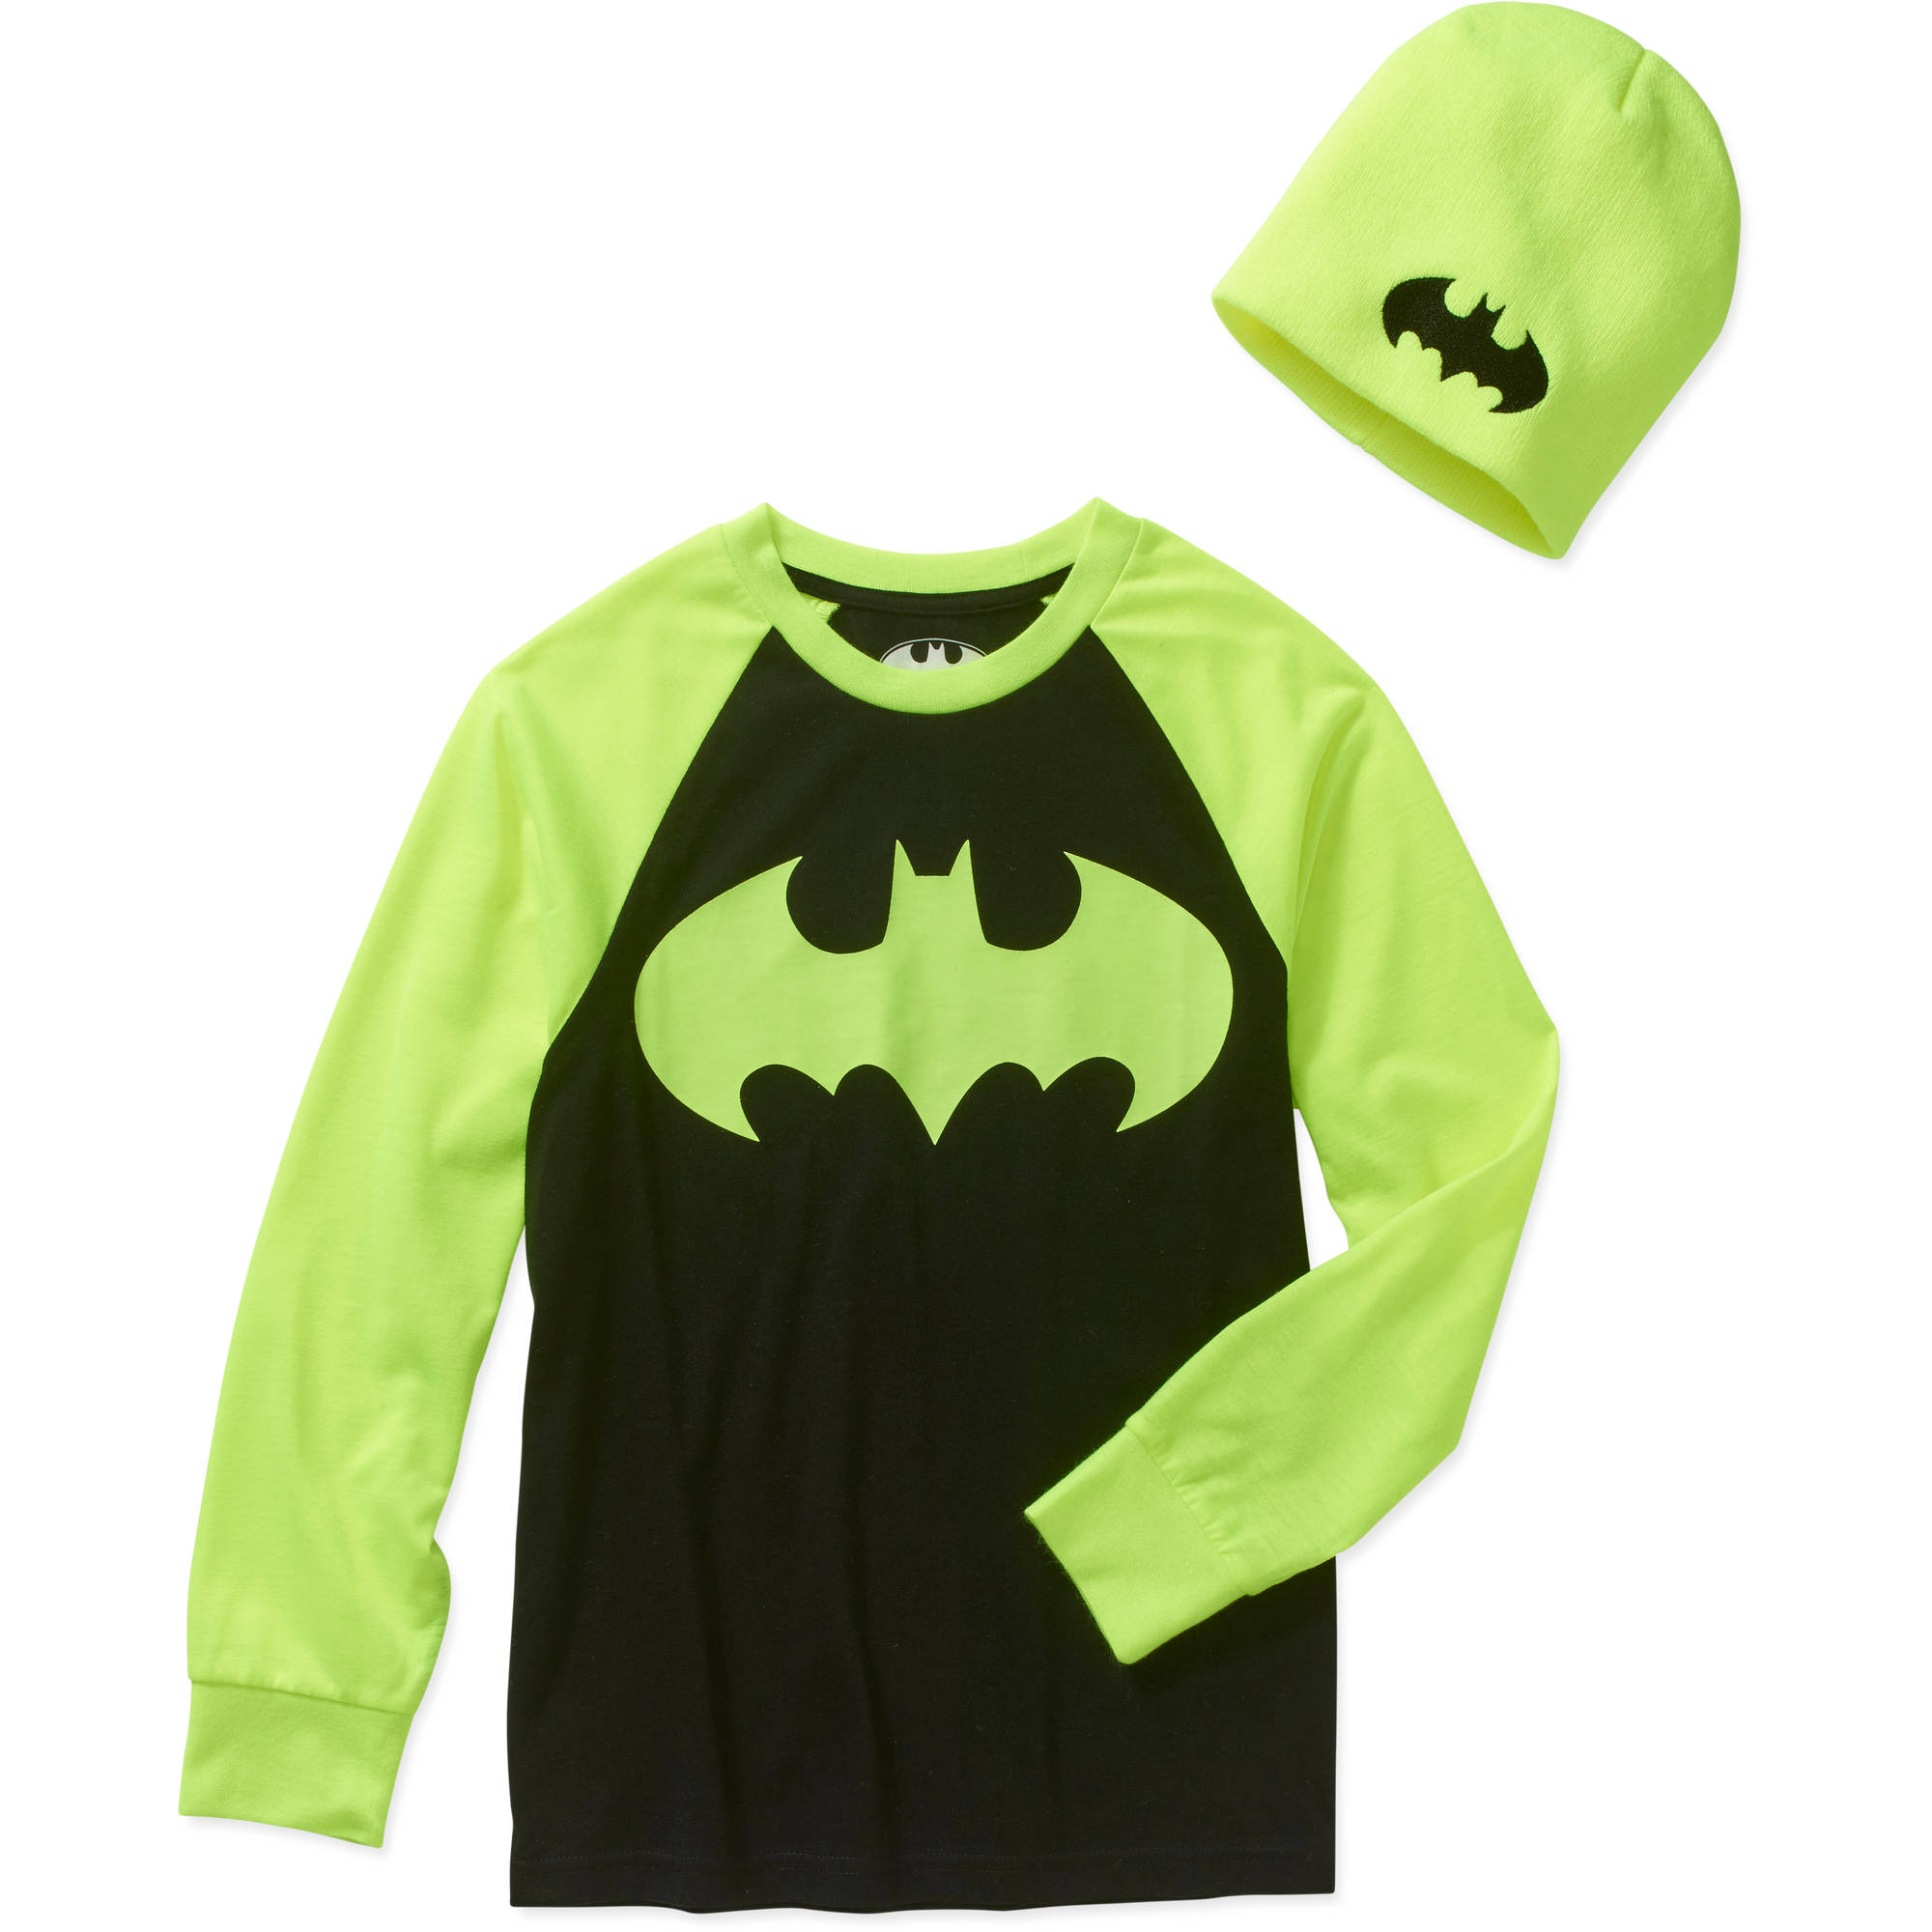 DC Comics Batman Boys' Graphic Tee with Beanie Combo